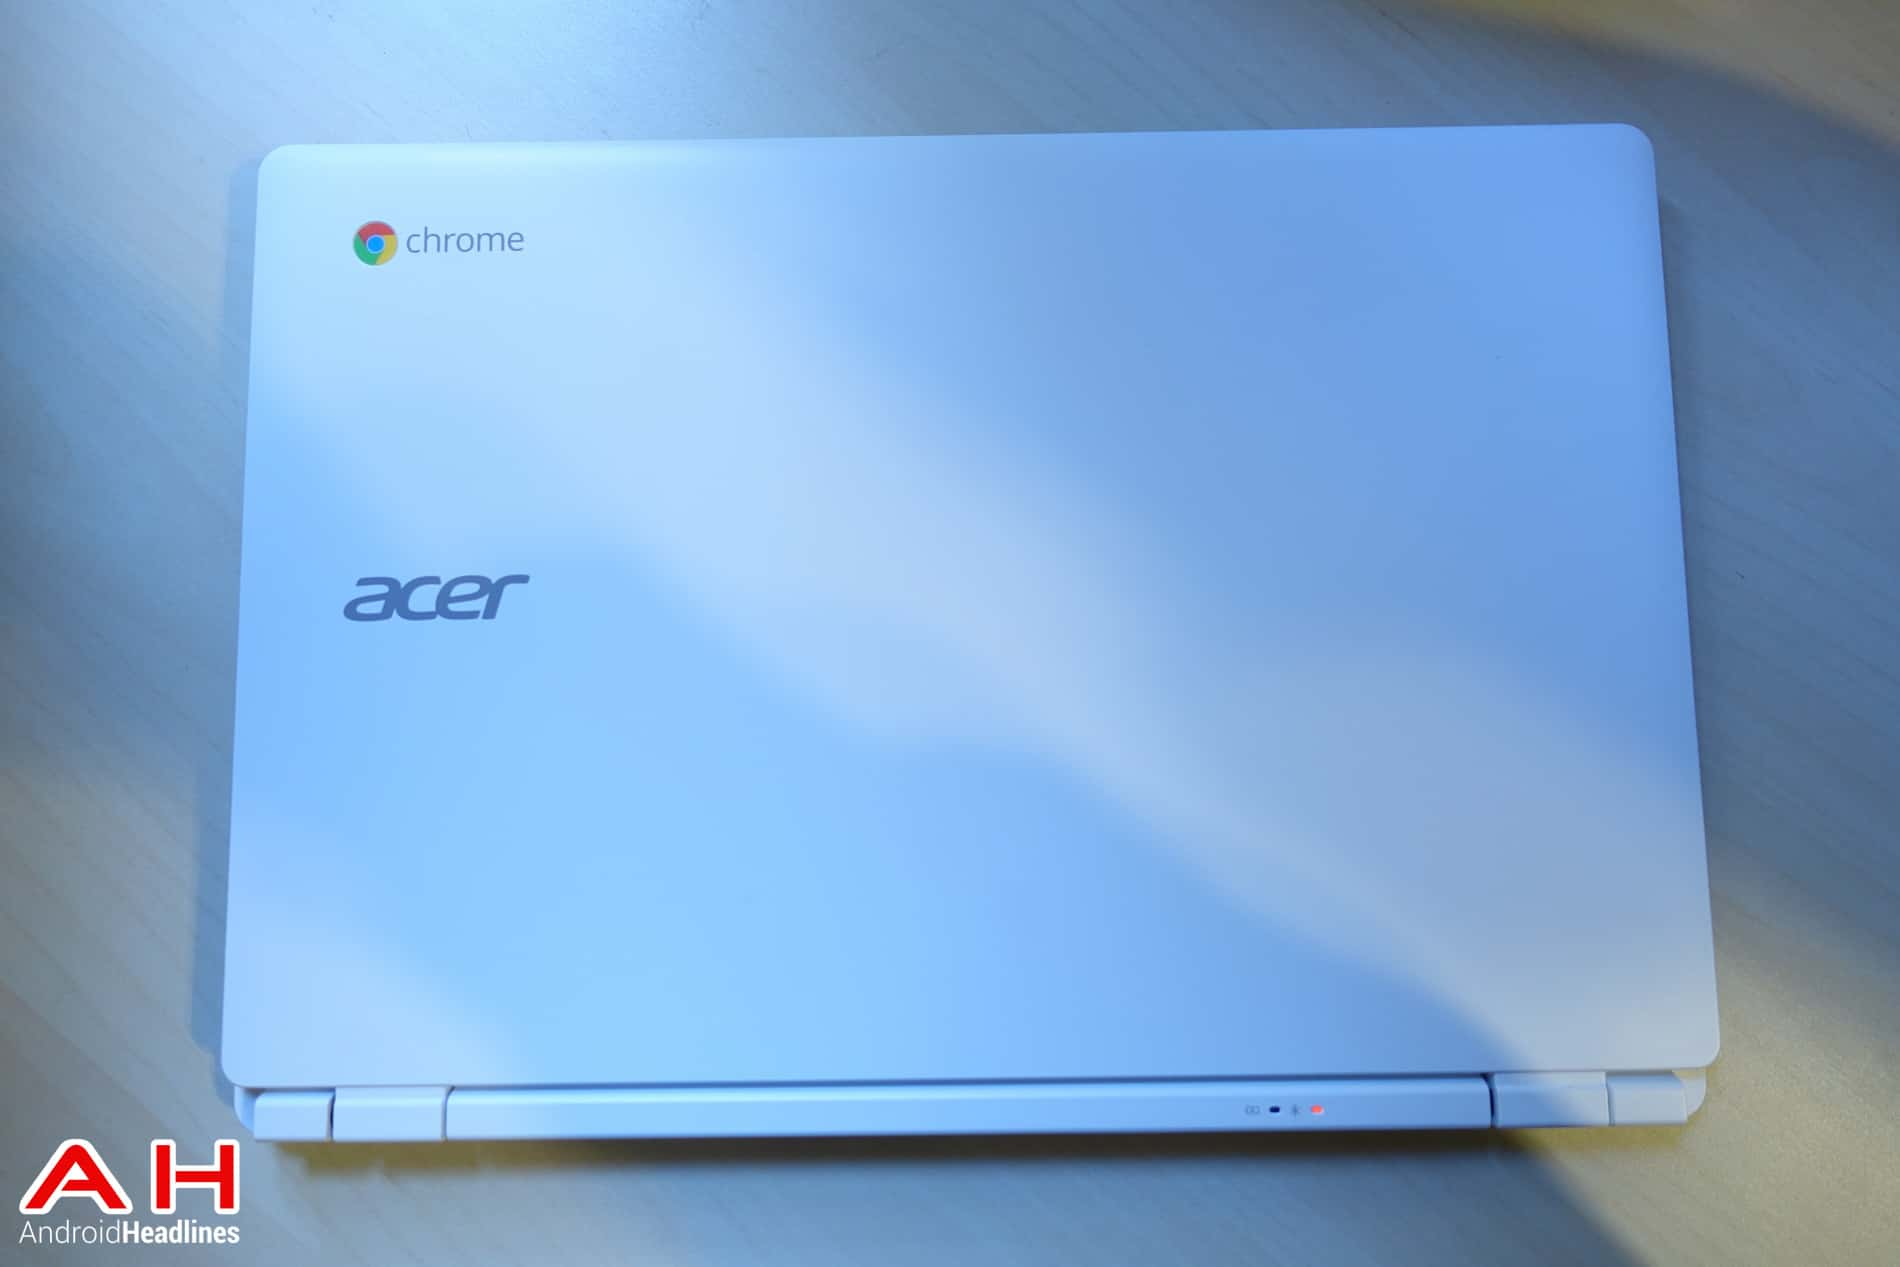 Acer-Chromebook-13-Review-AH-1-2